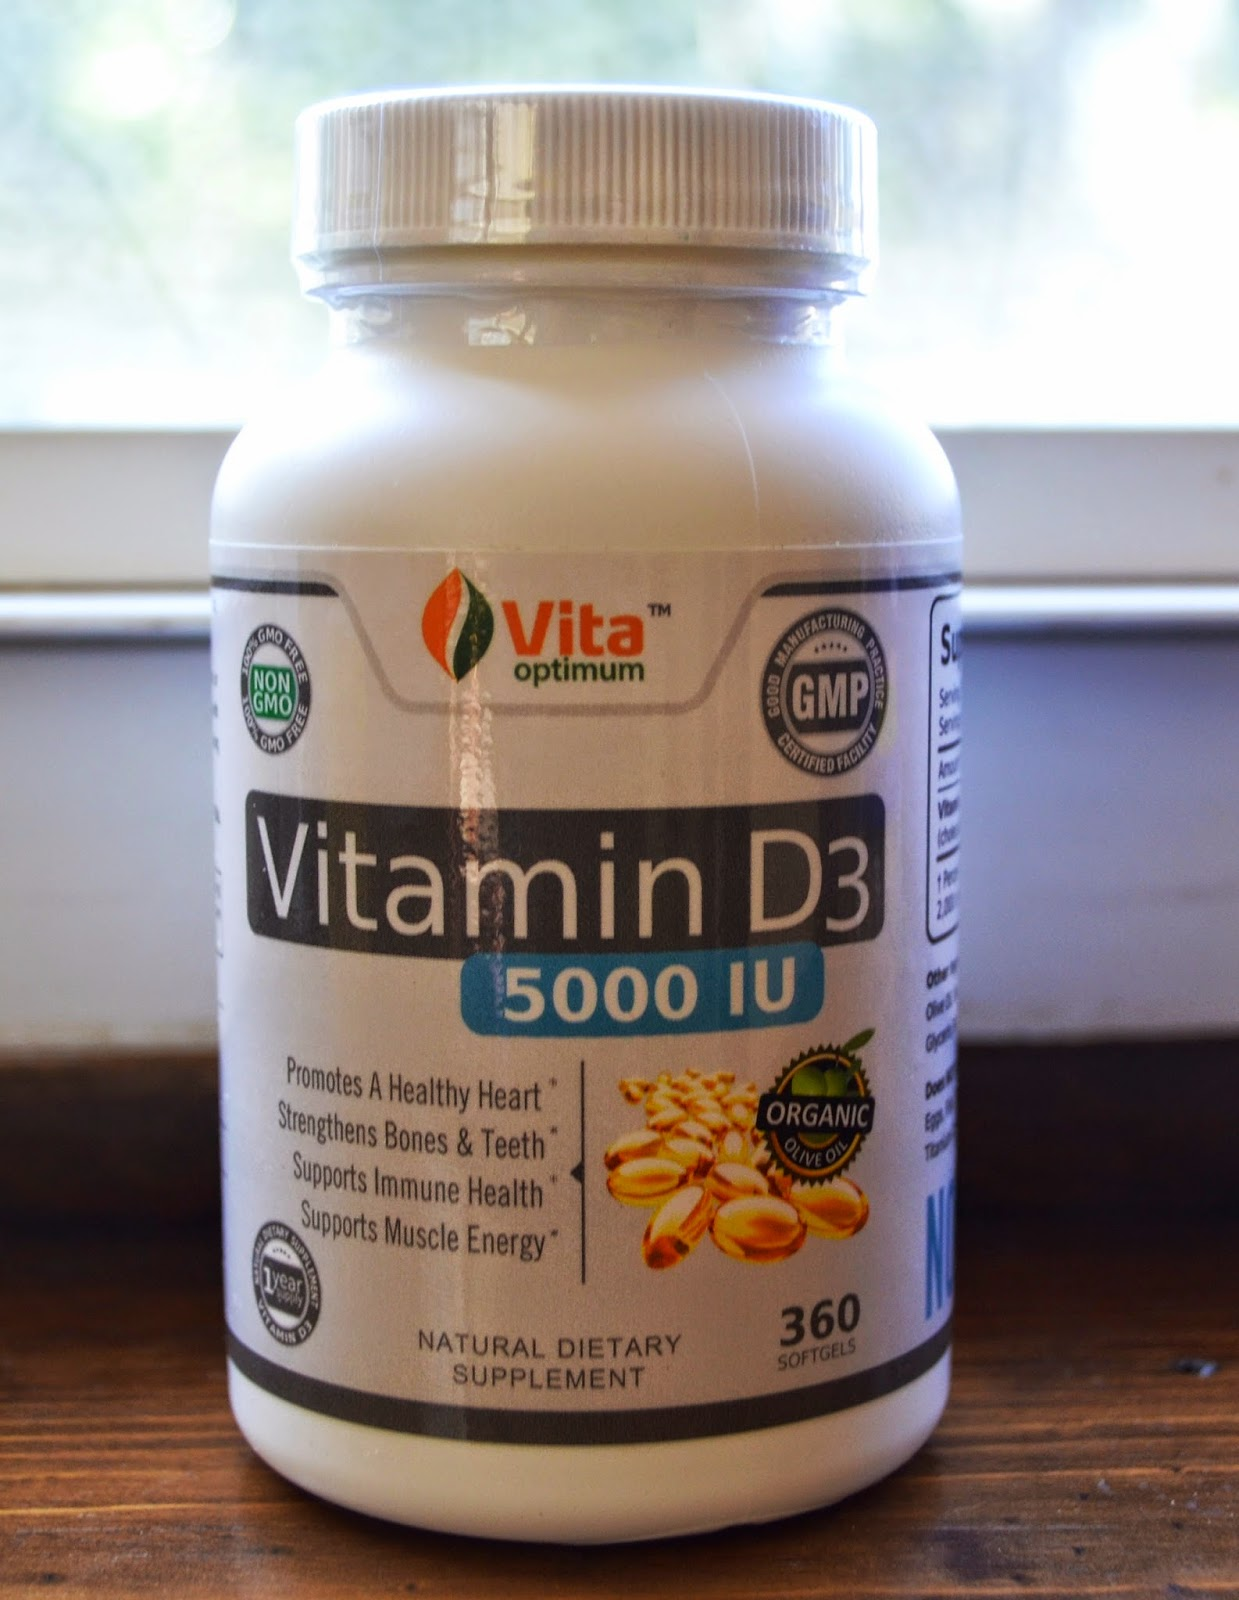 Vita Optimum Vitamin D3